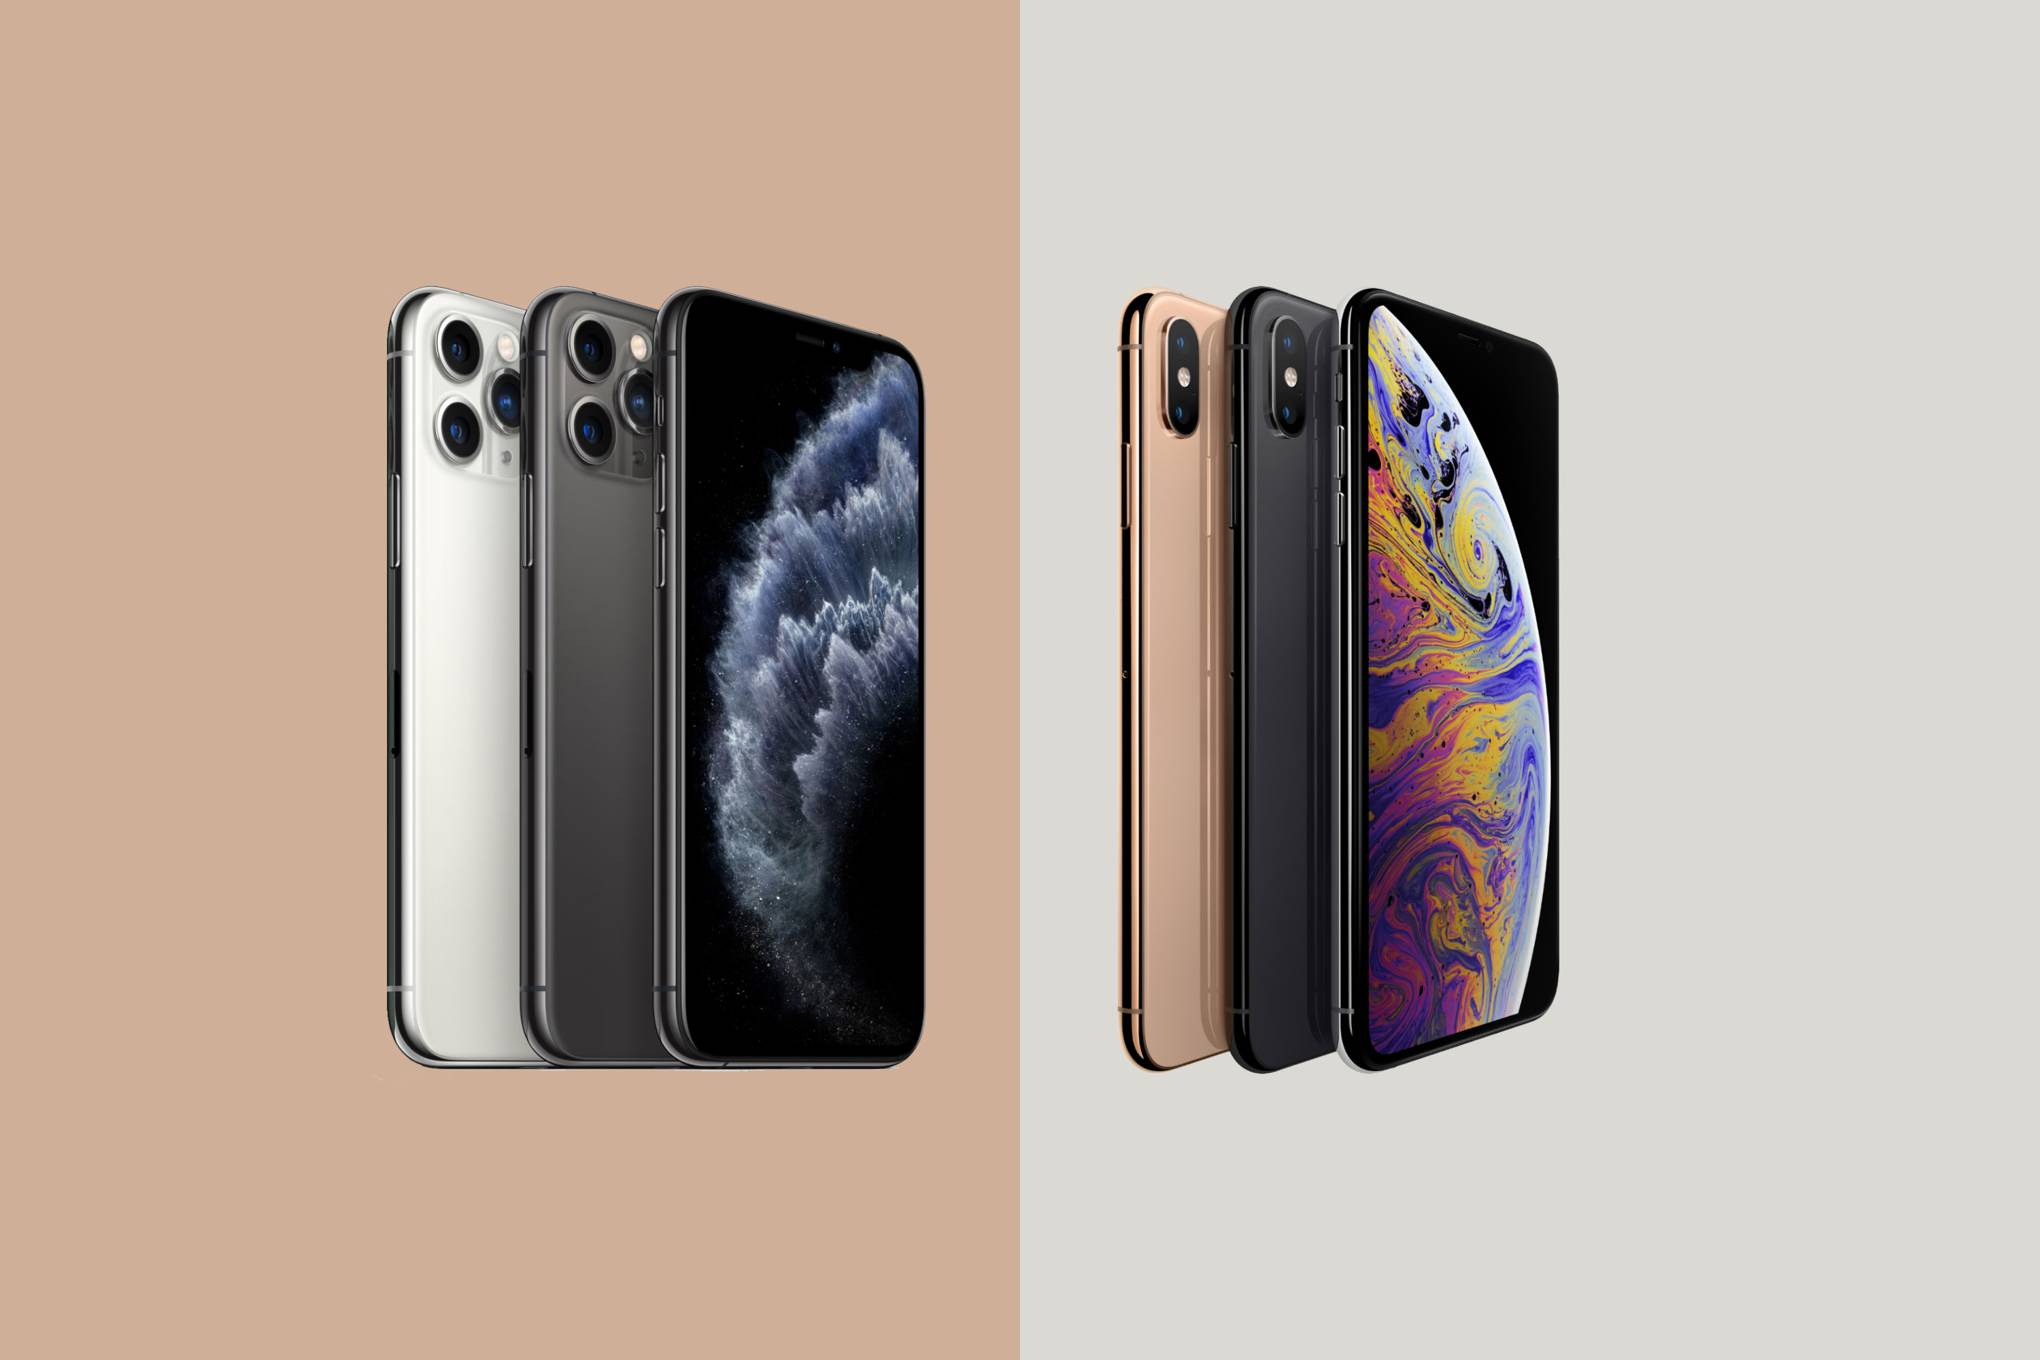 Should you upgrade to a new iPhone? The iPhone 11 vs the iPhone XS and XR